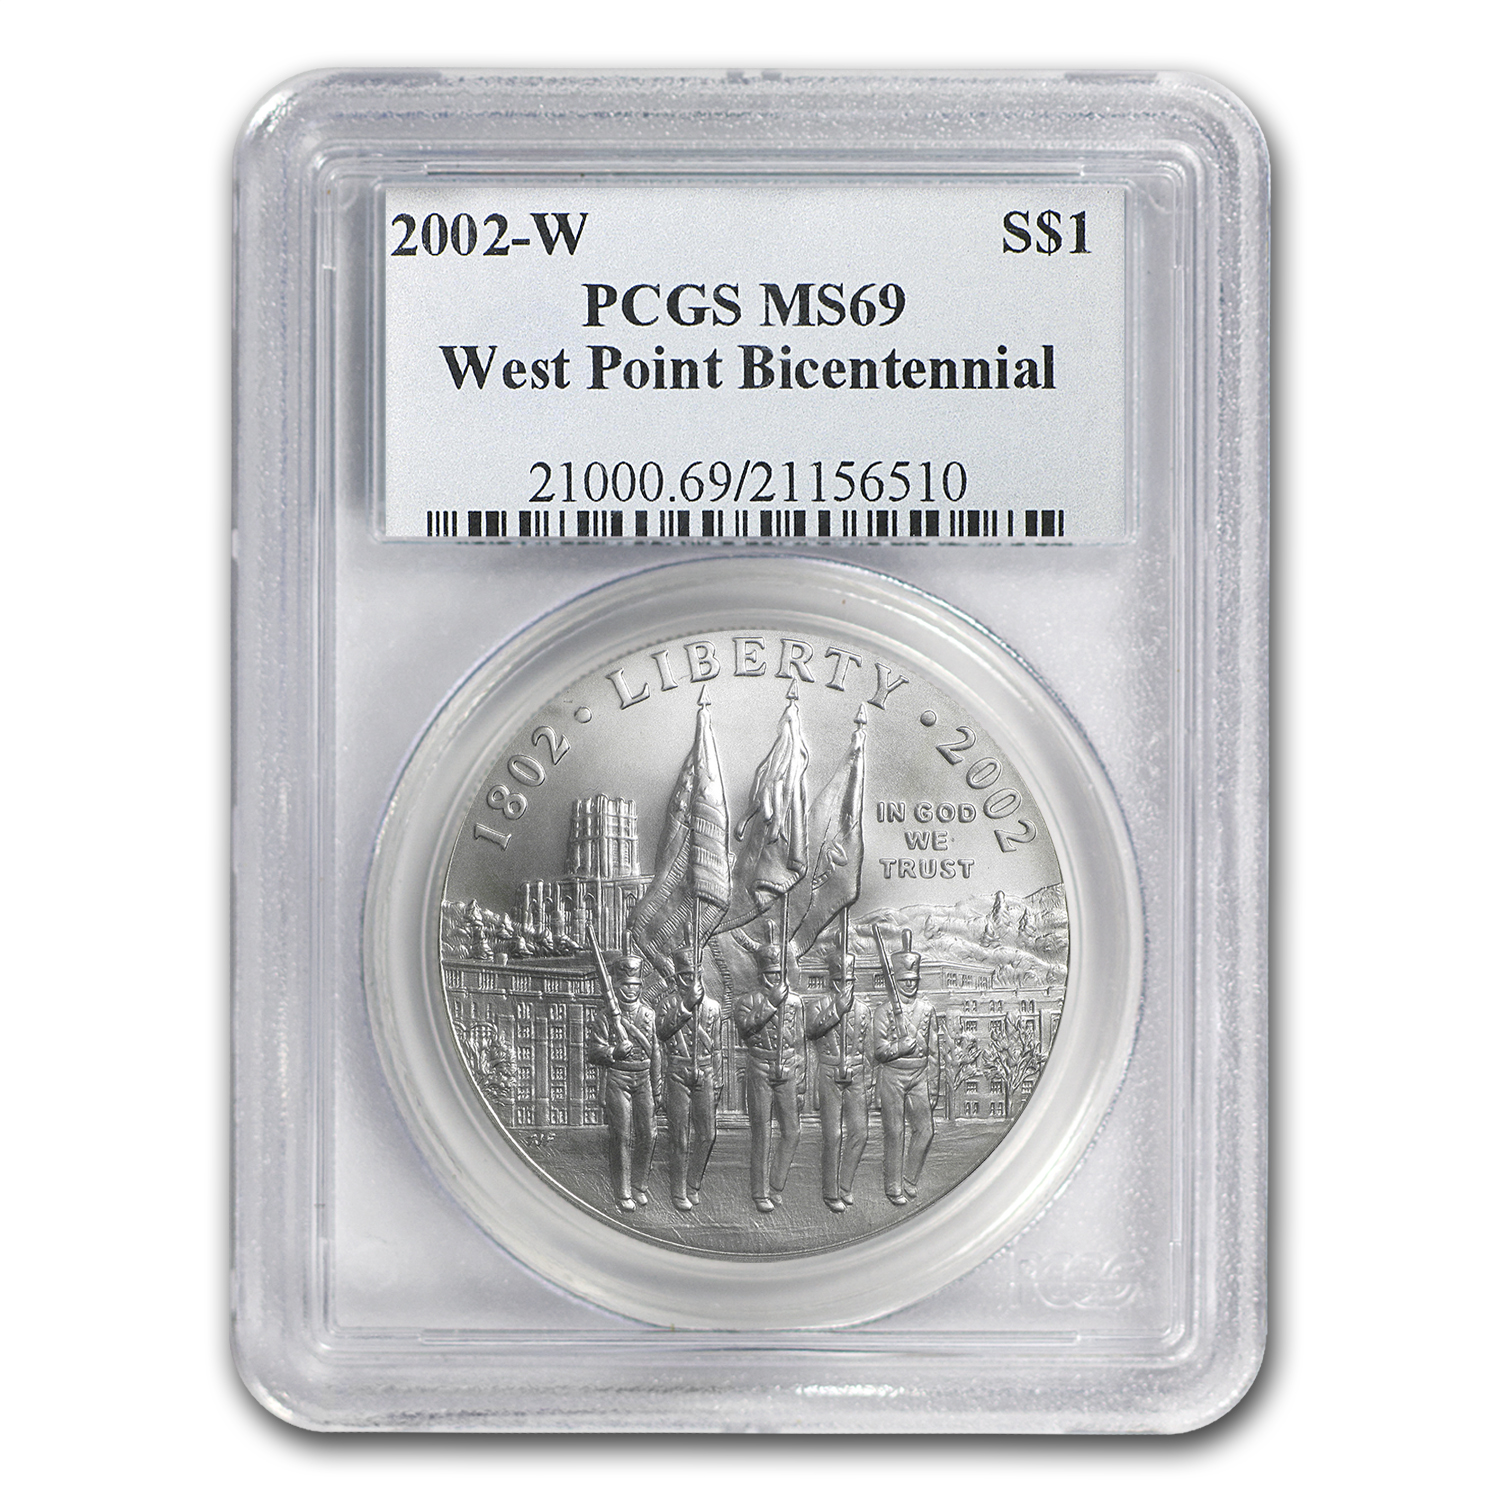 2002-W West Point Bicentennial $1 Silver Commem MS-69 PCGS